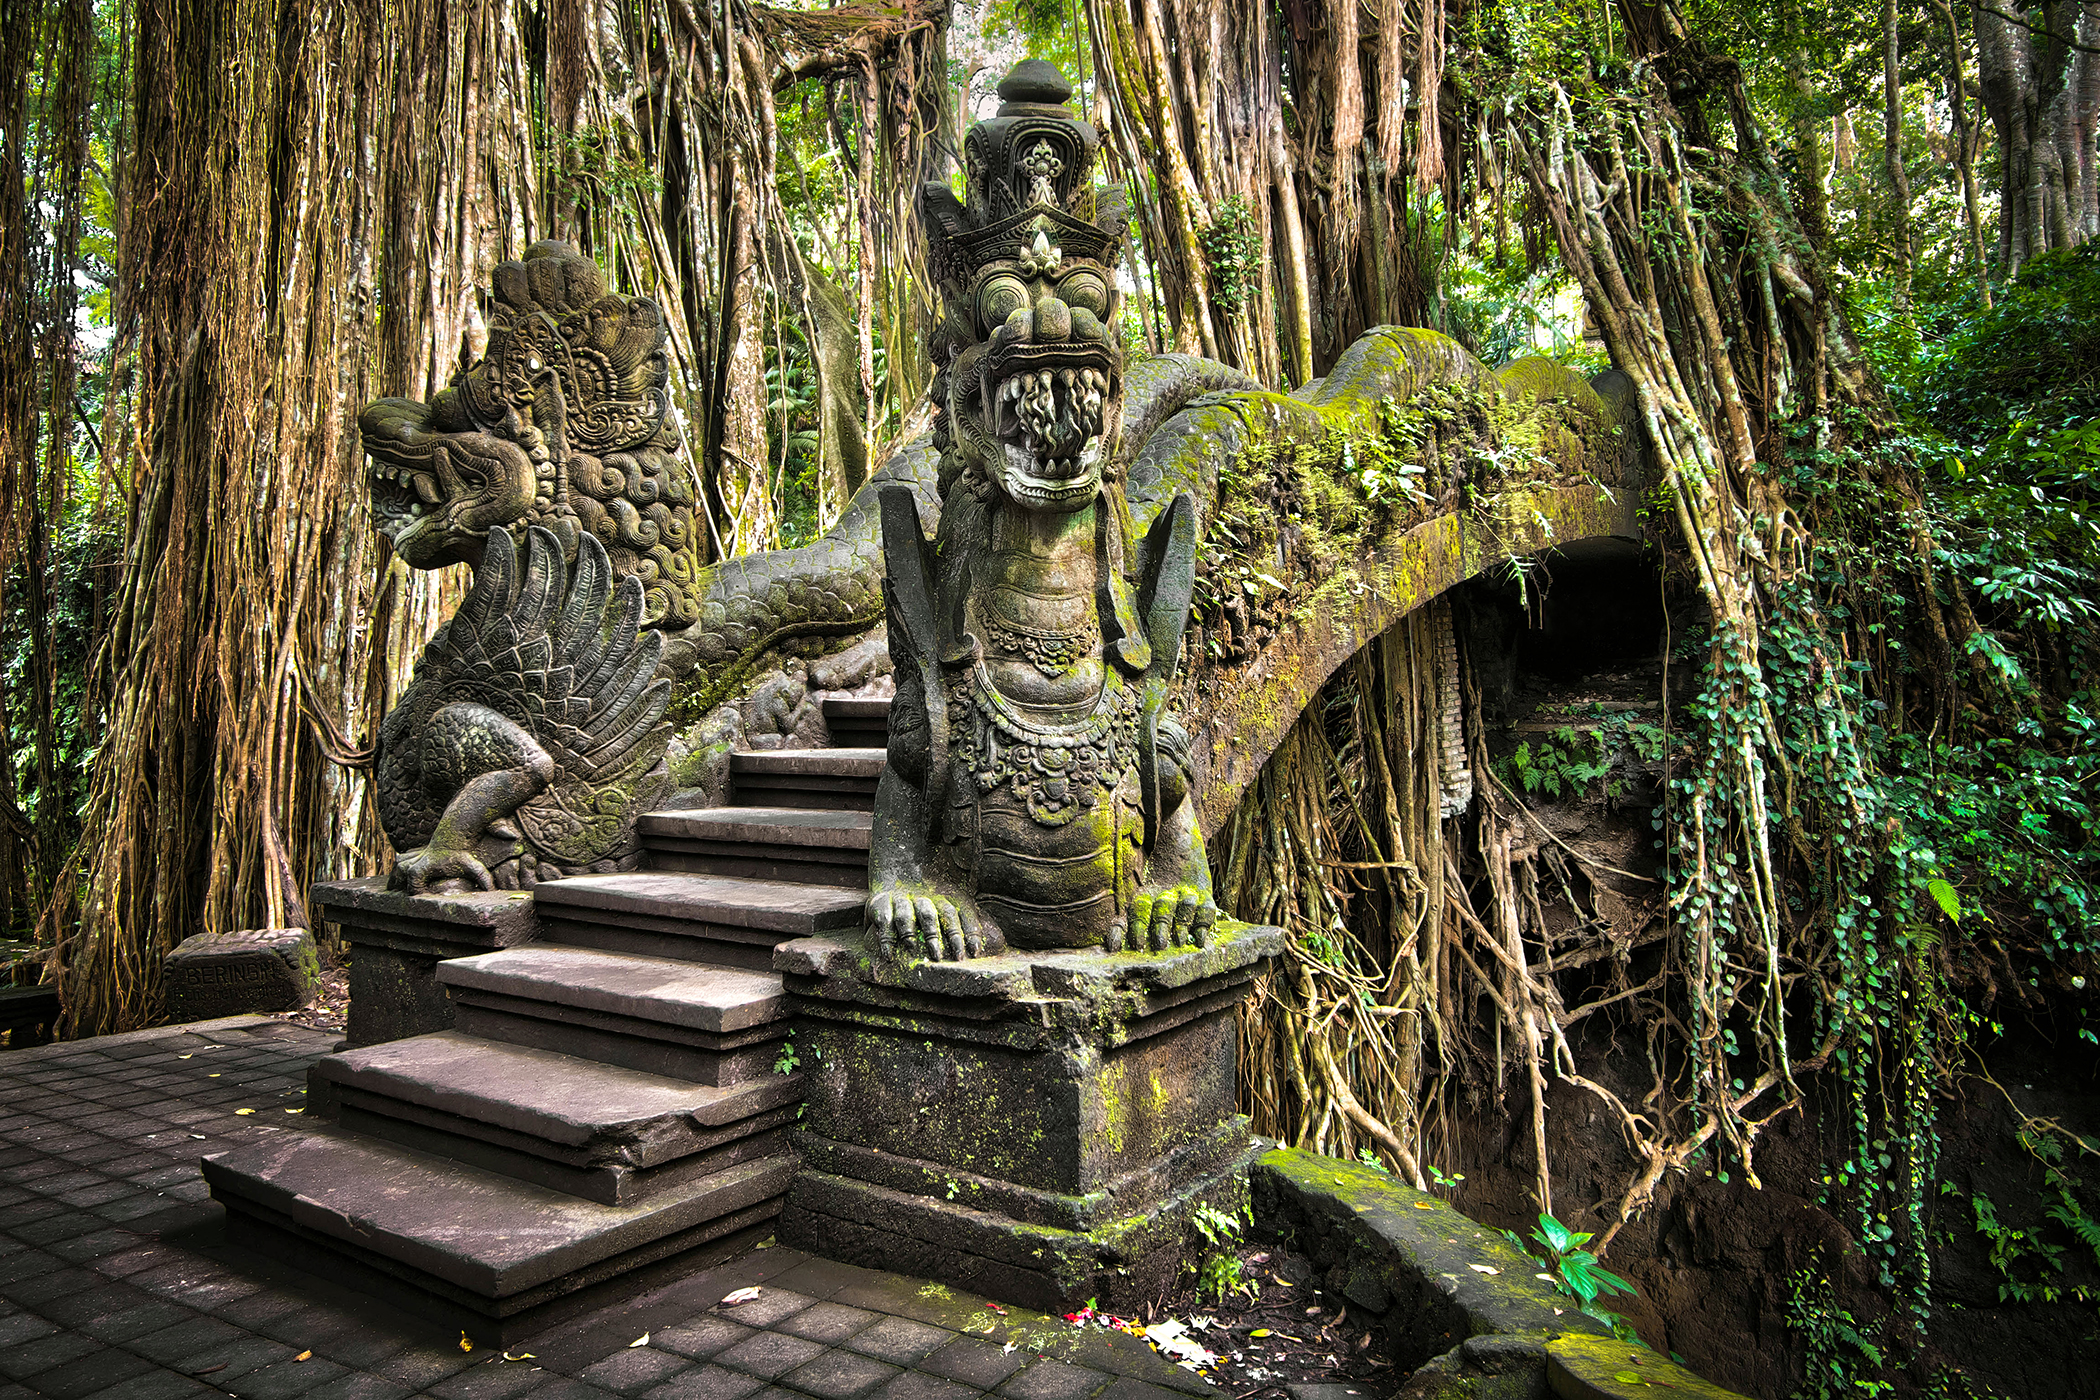 Bridge at Monkey Forest Sanctuary in Ubud, Bali, Indonesia